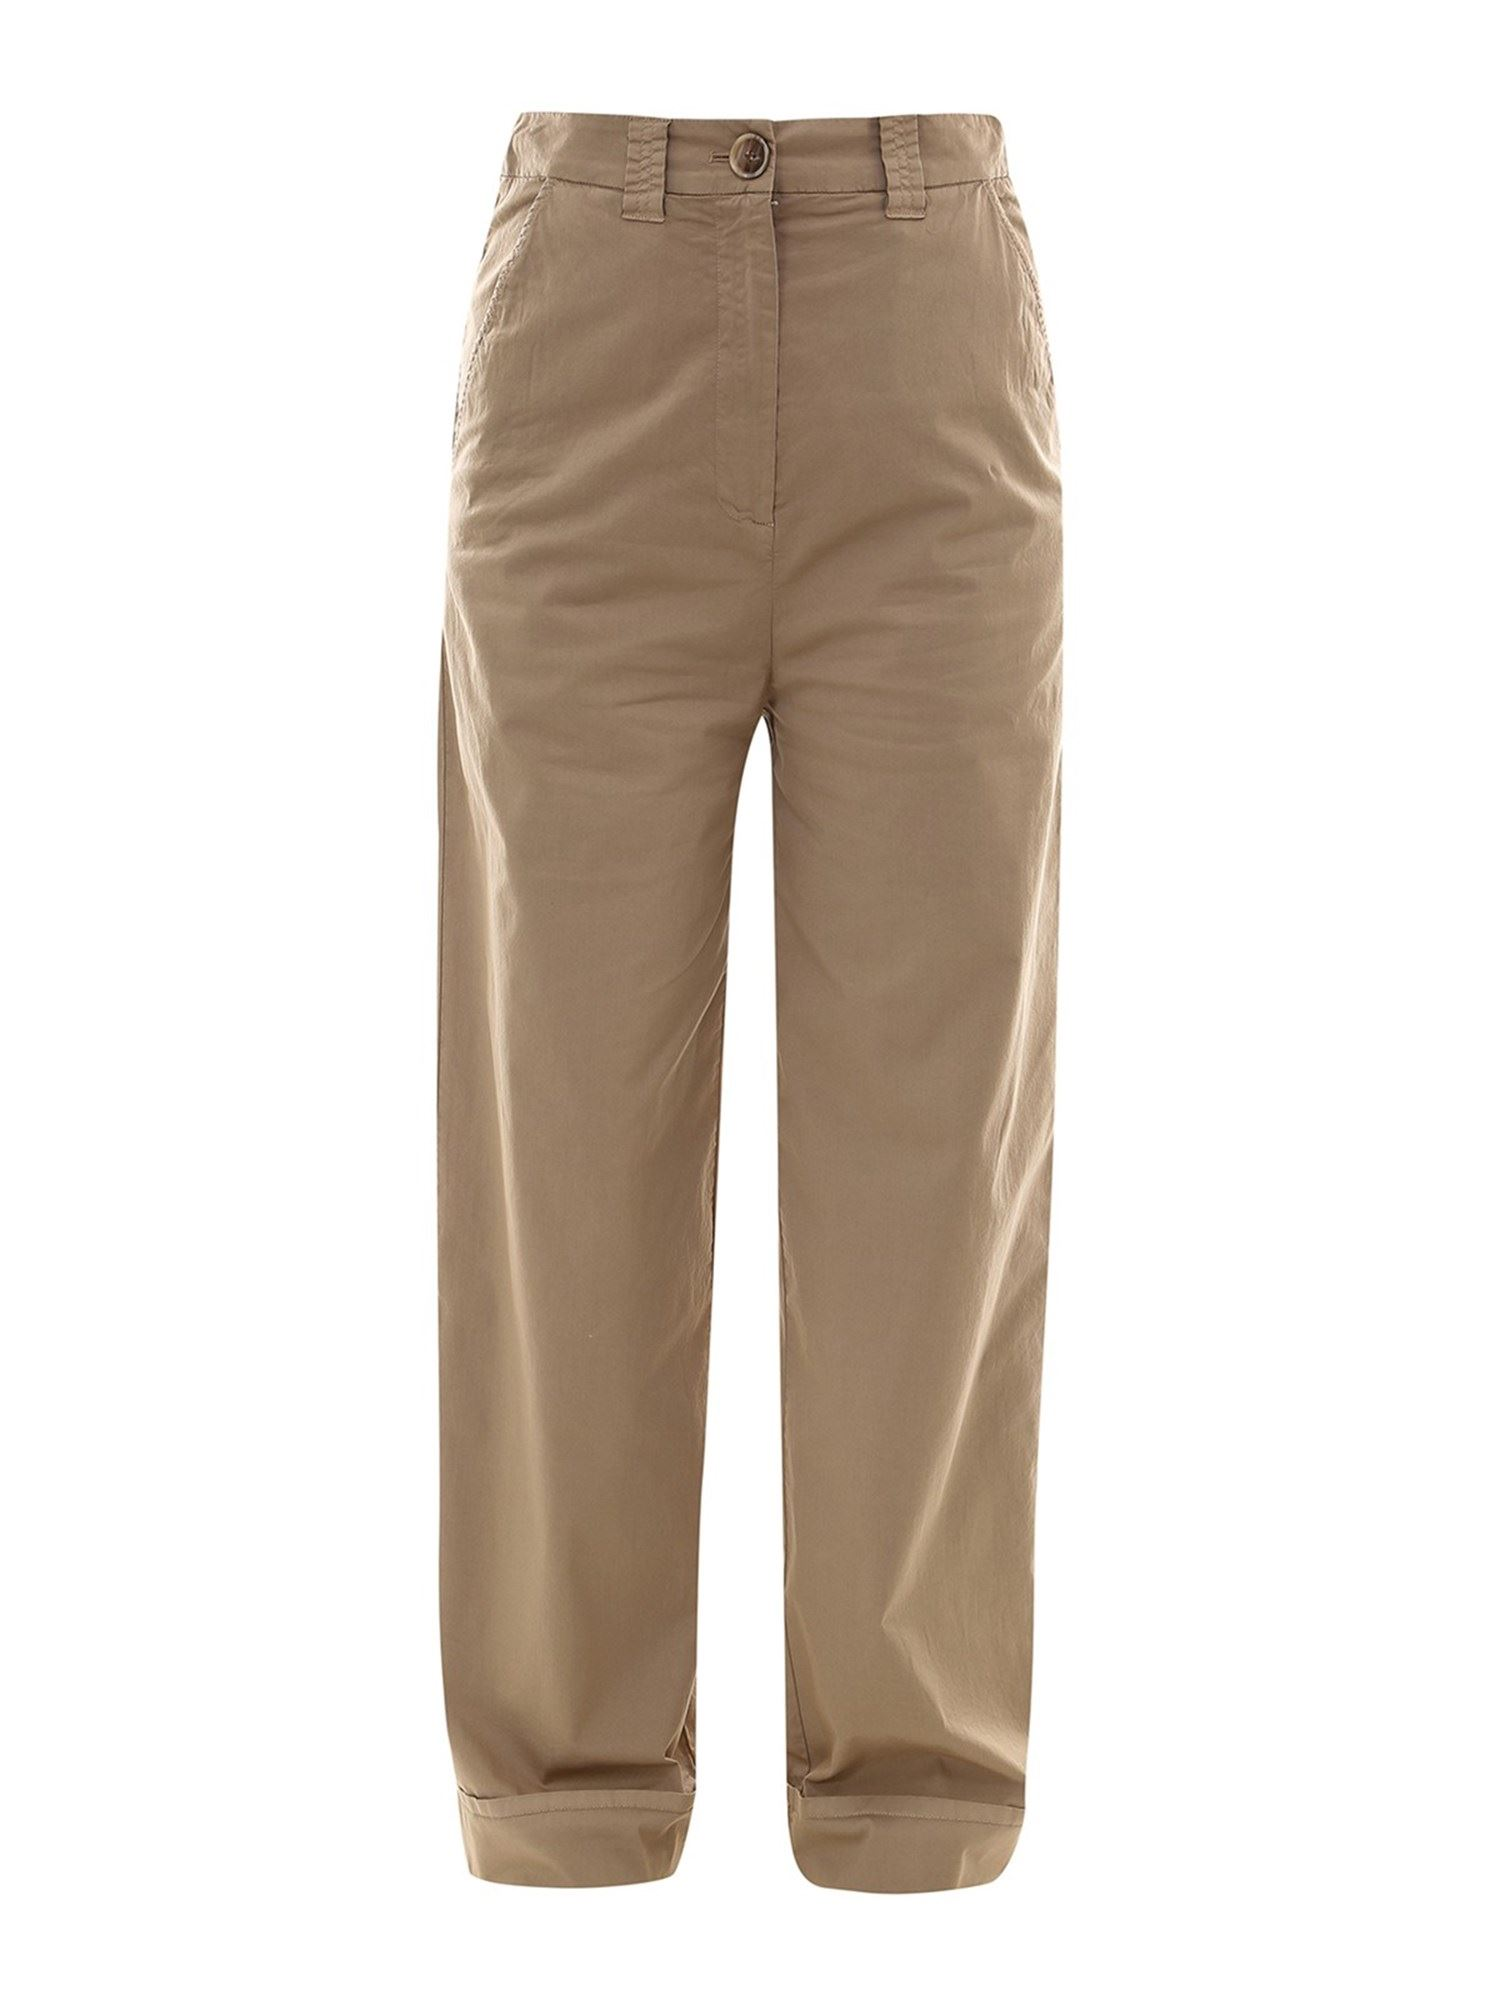 Semicouture STRETCH COTTON PANTS IN BEIGE